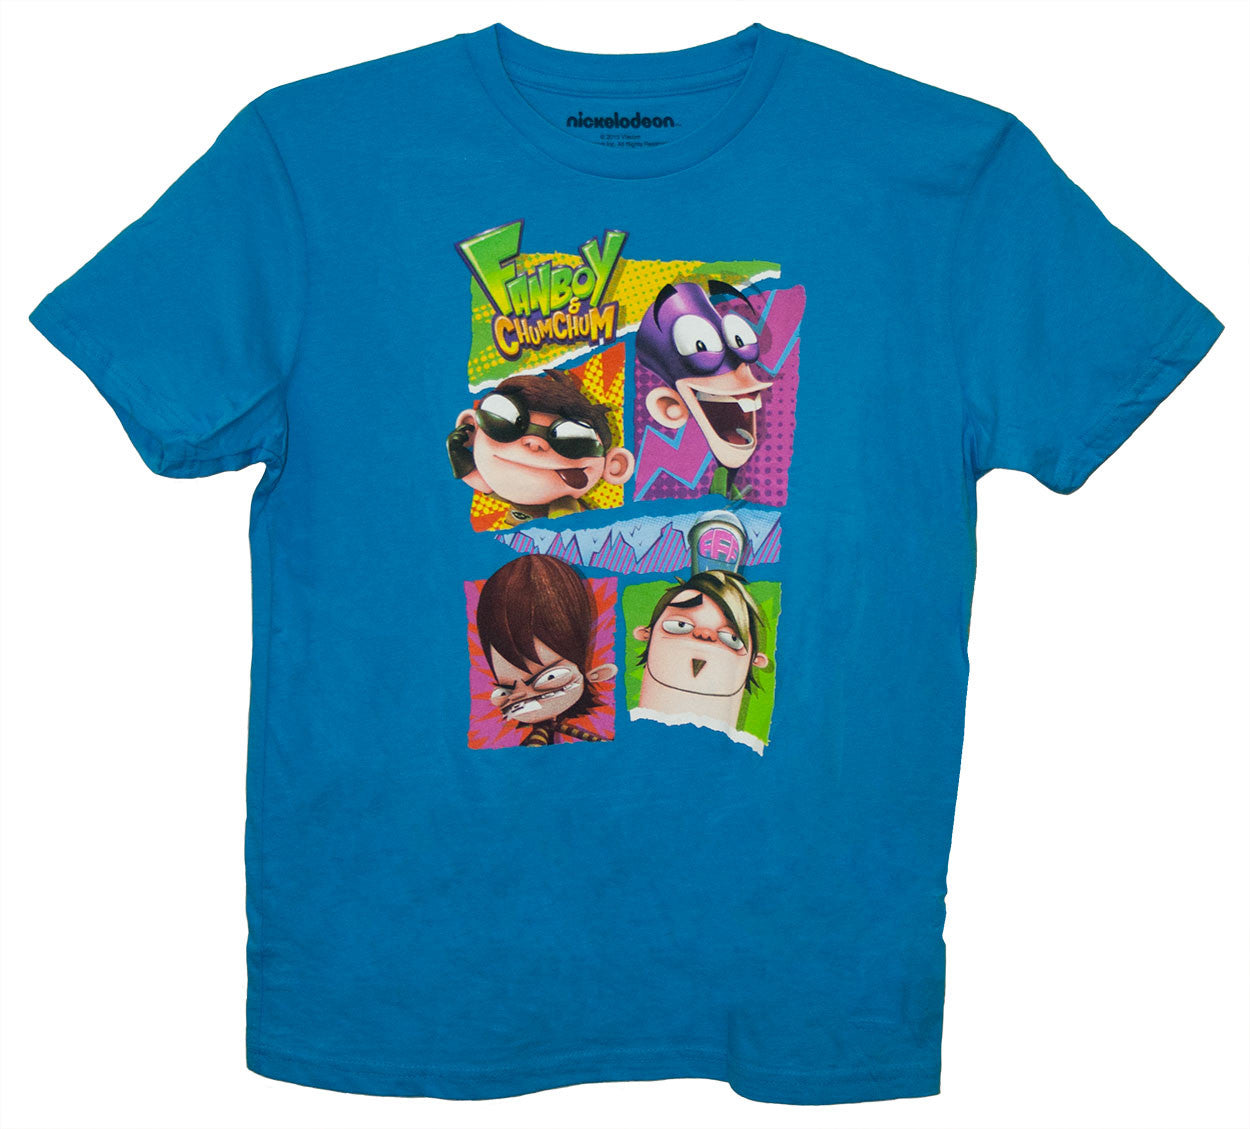 Fanboy & Chum Chum Cast Tee - Youth - nickelodeonstore.co.uk